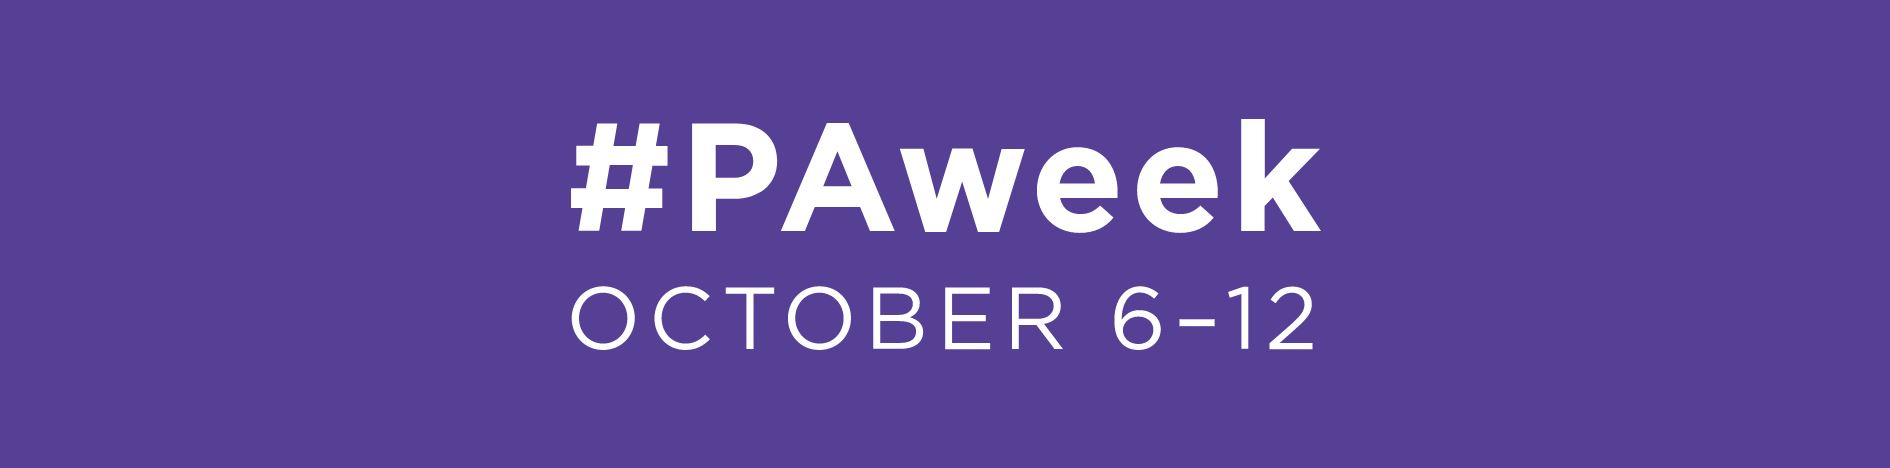 national pa week 2017 - image of national PA week hashtag